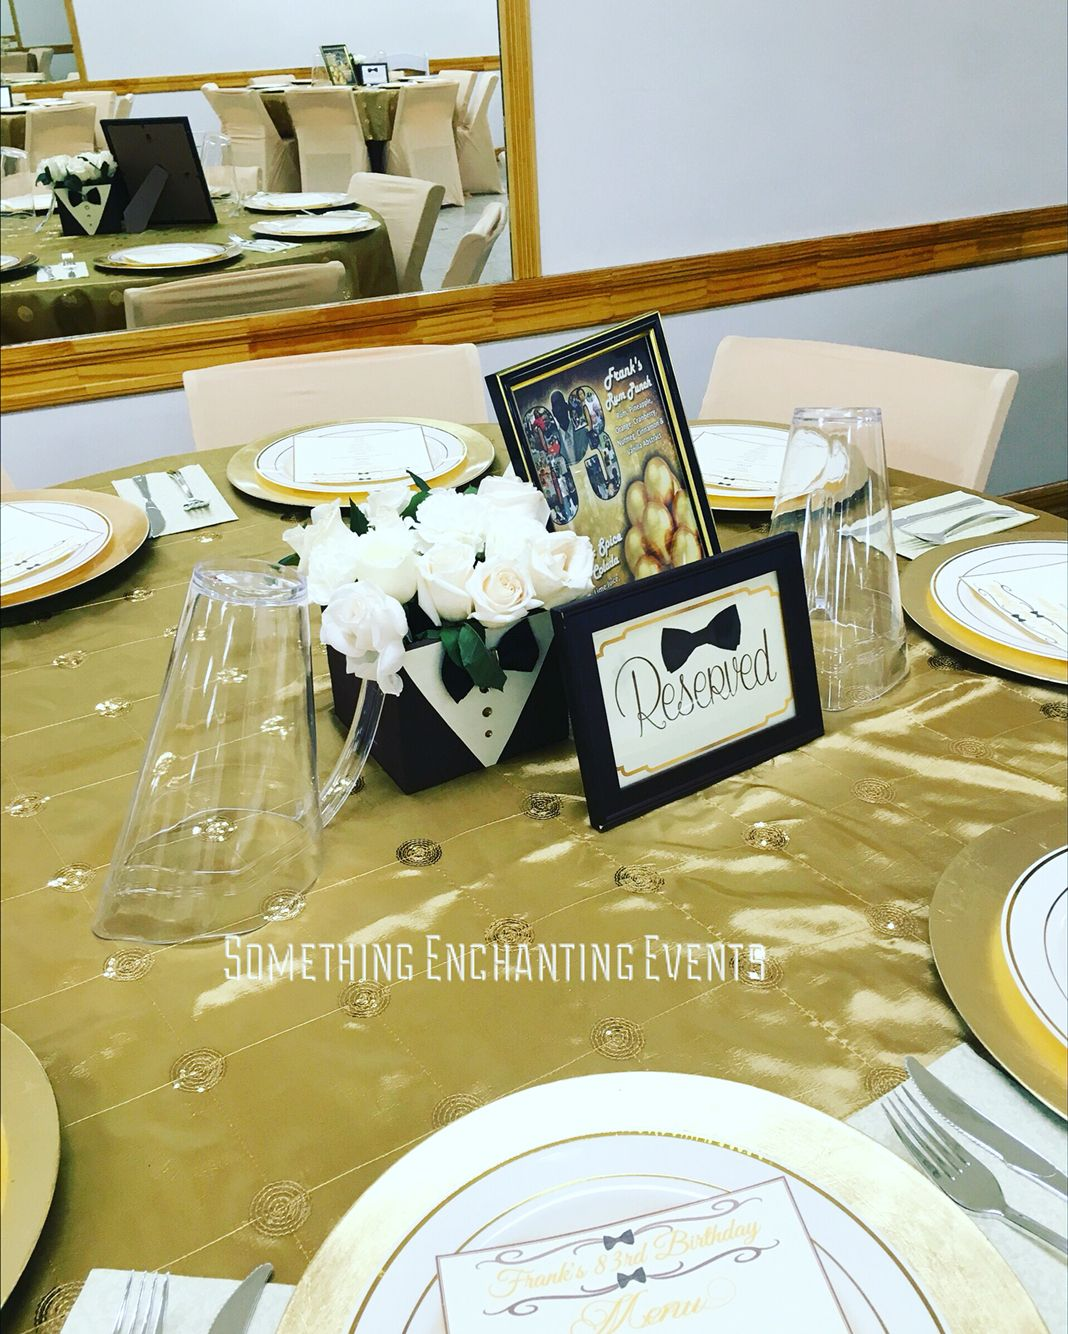 21st Birthday Table Arrangements: Bow Tie Flower Boxes For The Centerpieces For A Very